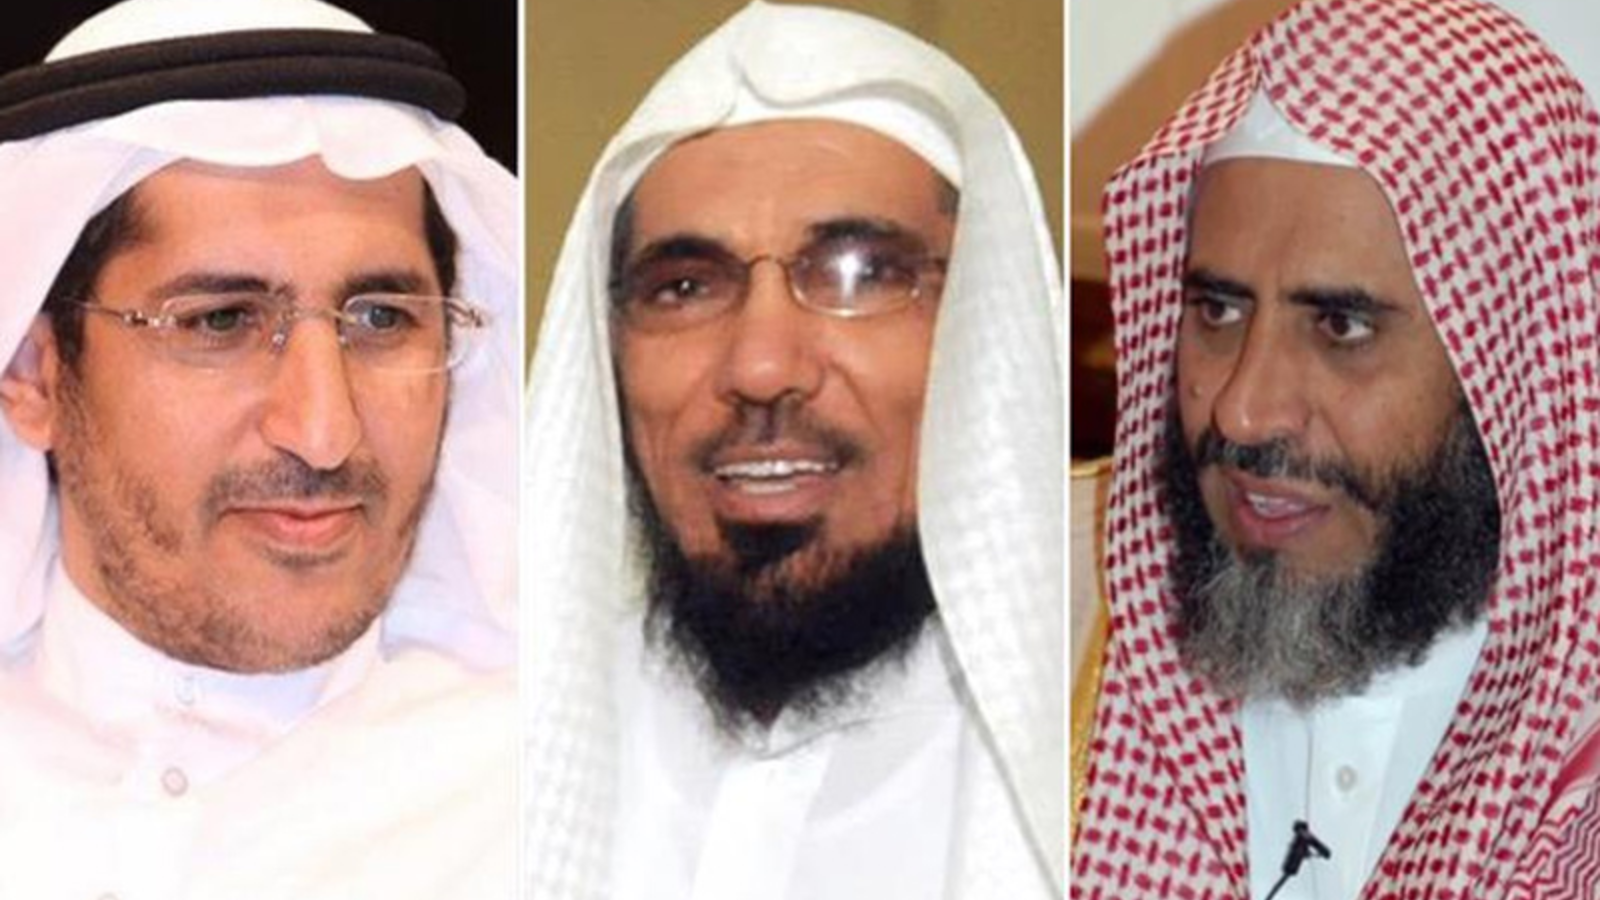 From left to right, Sheikh Salman al-Awdah, Awad al-Qarni, and Ali al-Omari. (Twitter)